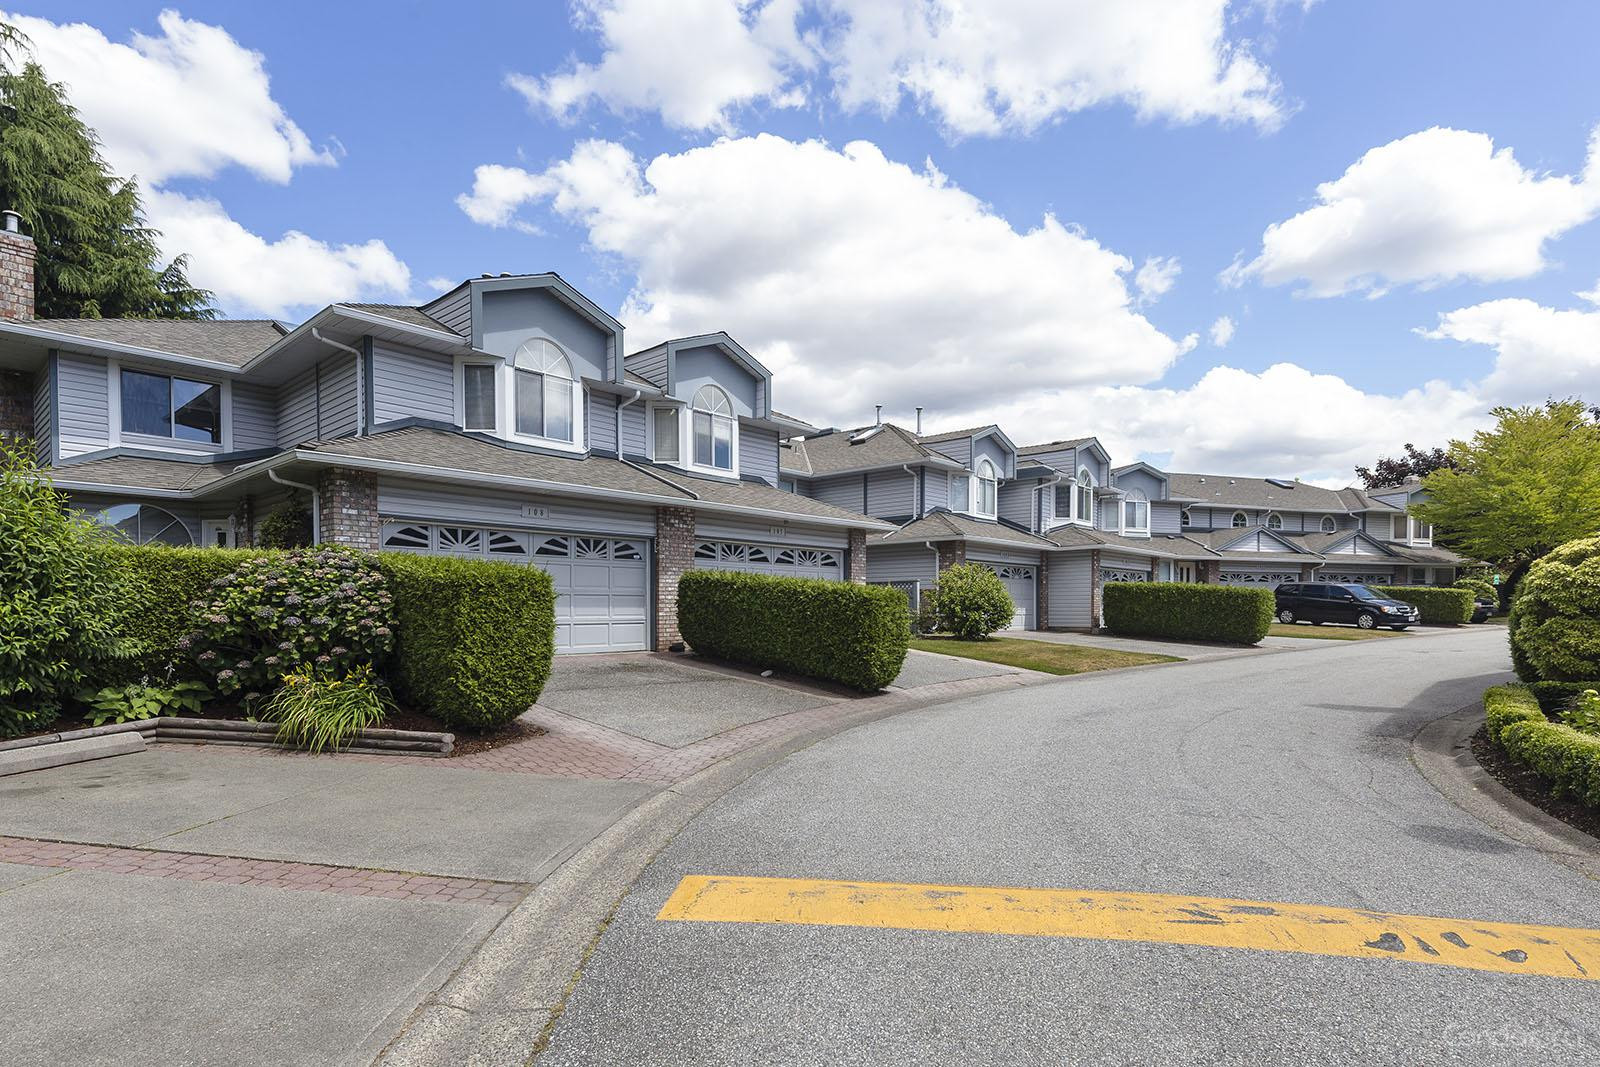 Park Wynd at 12044 Boundary Dr S, Surrey 1